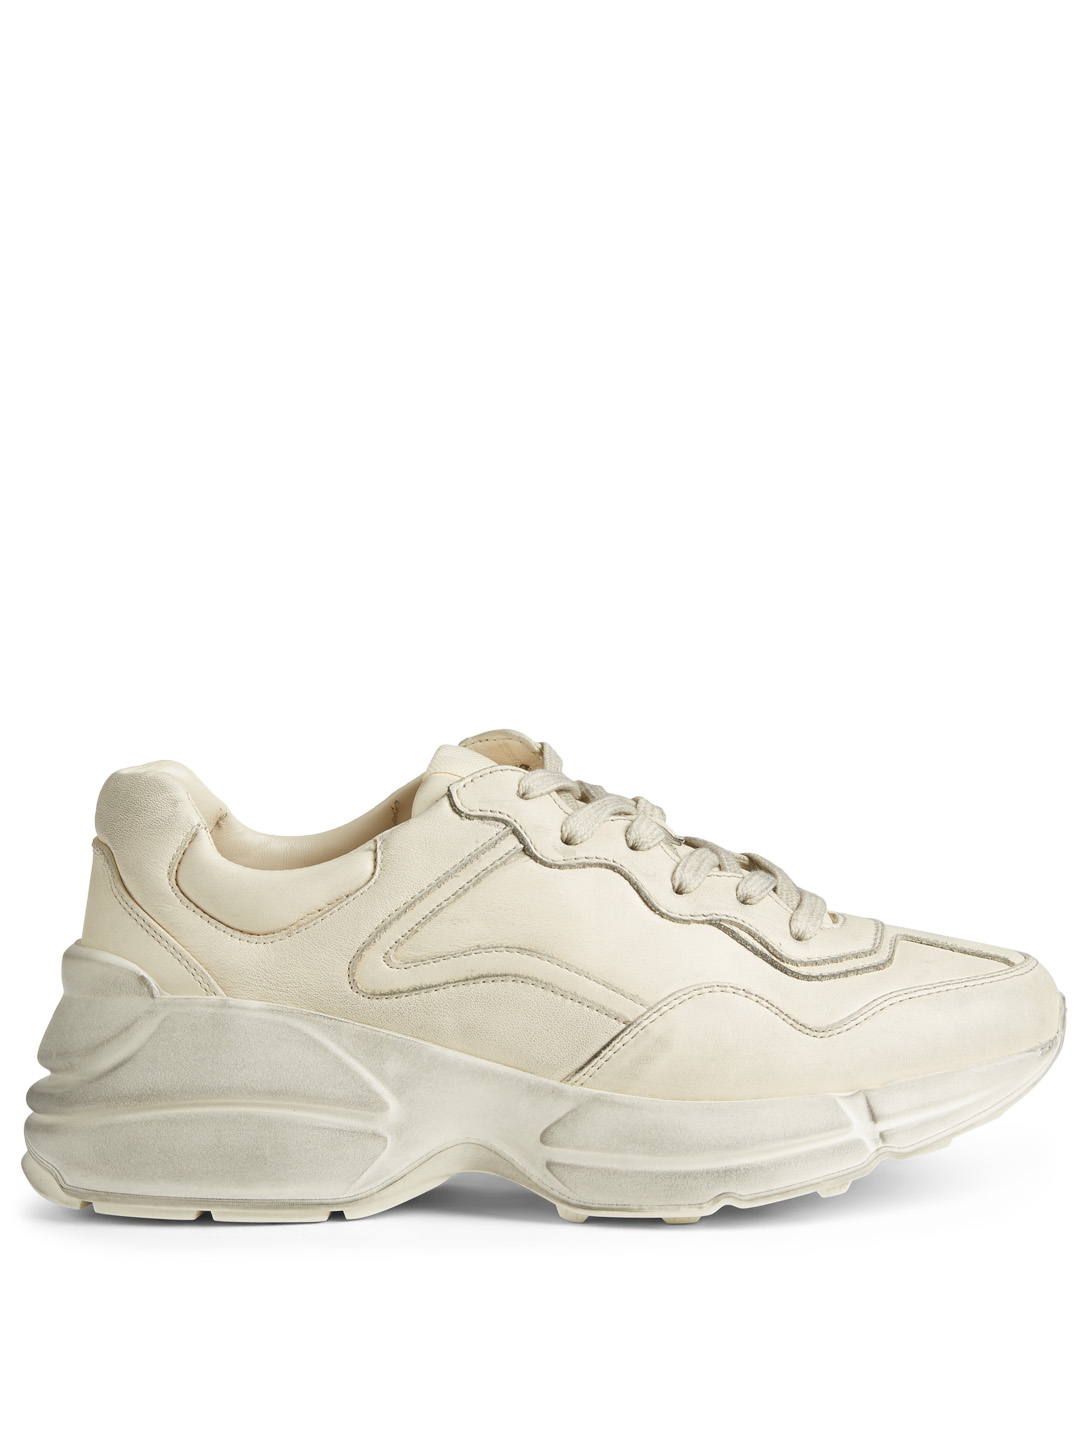 c5c064579d9 GUCCI Rhyton Leather Sneakers Women s White ...